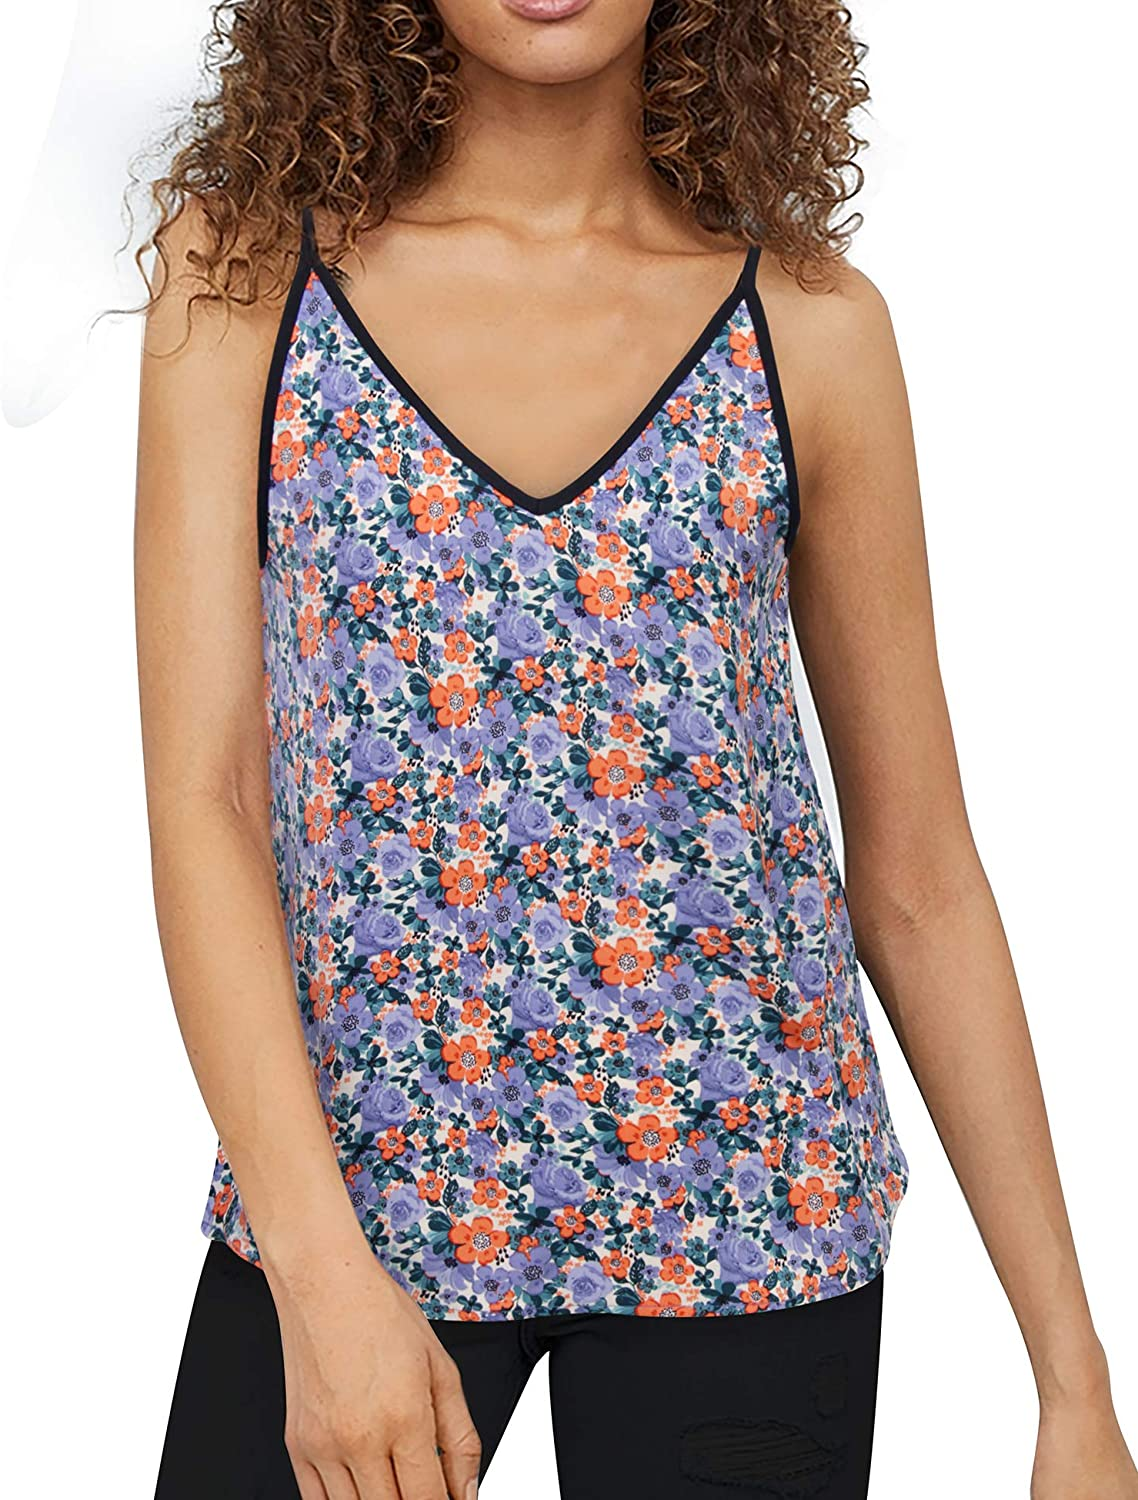 Timeson Women's V Neck Floral Tank Tops Casual Sleeveless Chiffon Blouse Shirts